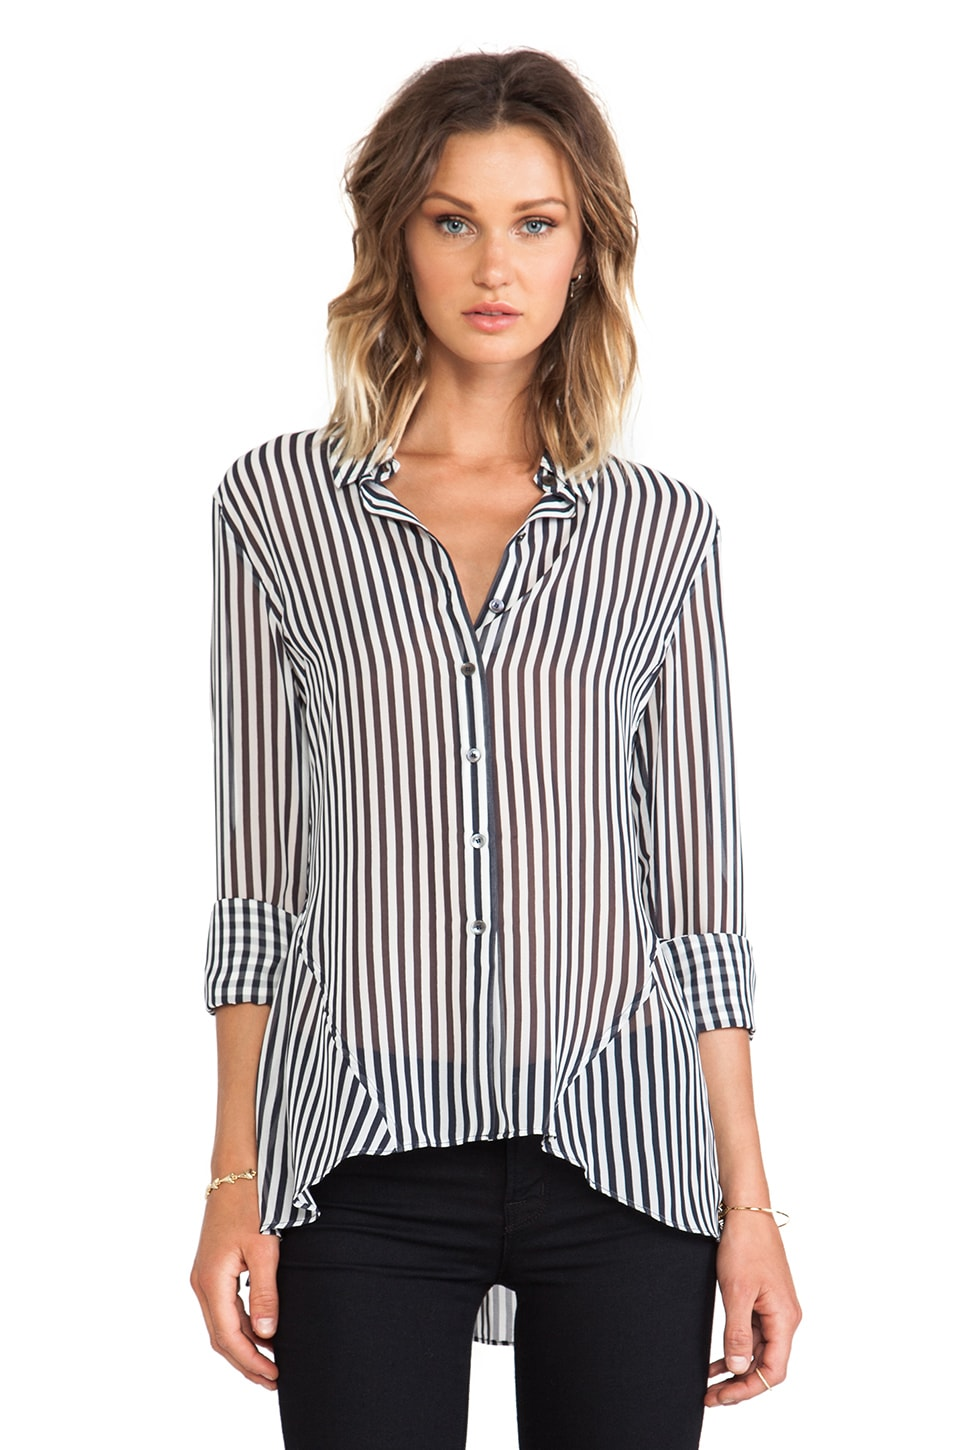 DEREK LAM 10 CROSBY RUNWAY Godets Blouse in Midnight/White